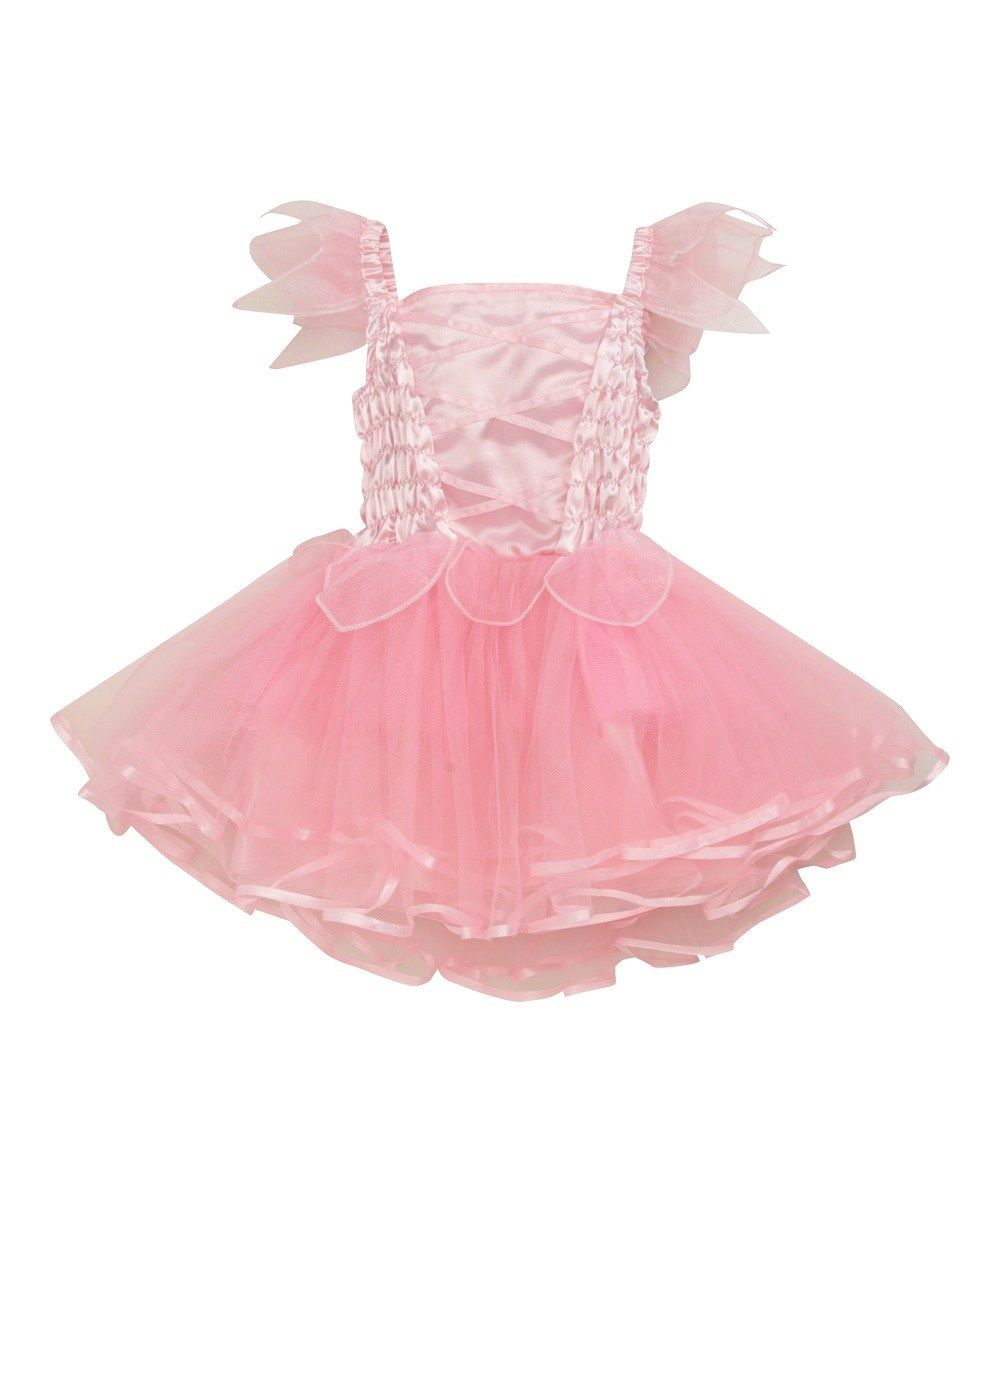 Kids Ballet Dress - Matalan | Clothes for Chloe | Pinterest | Kids ...